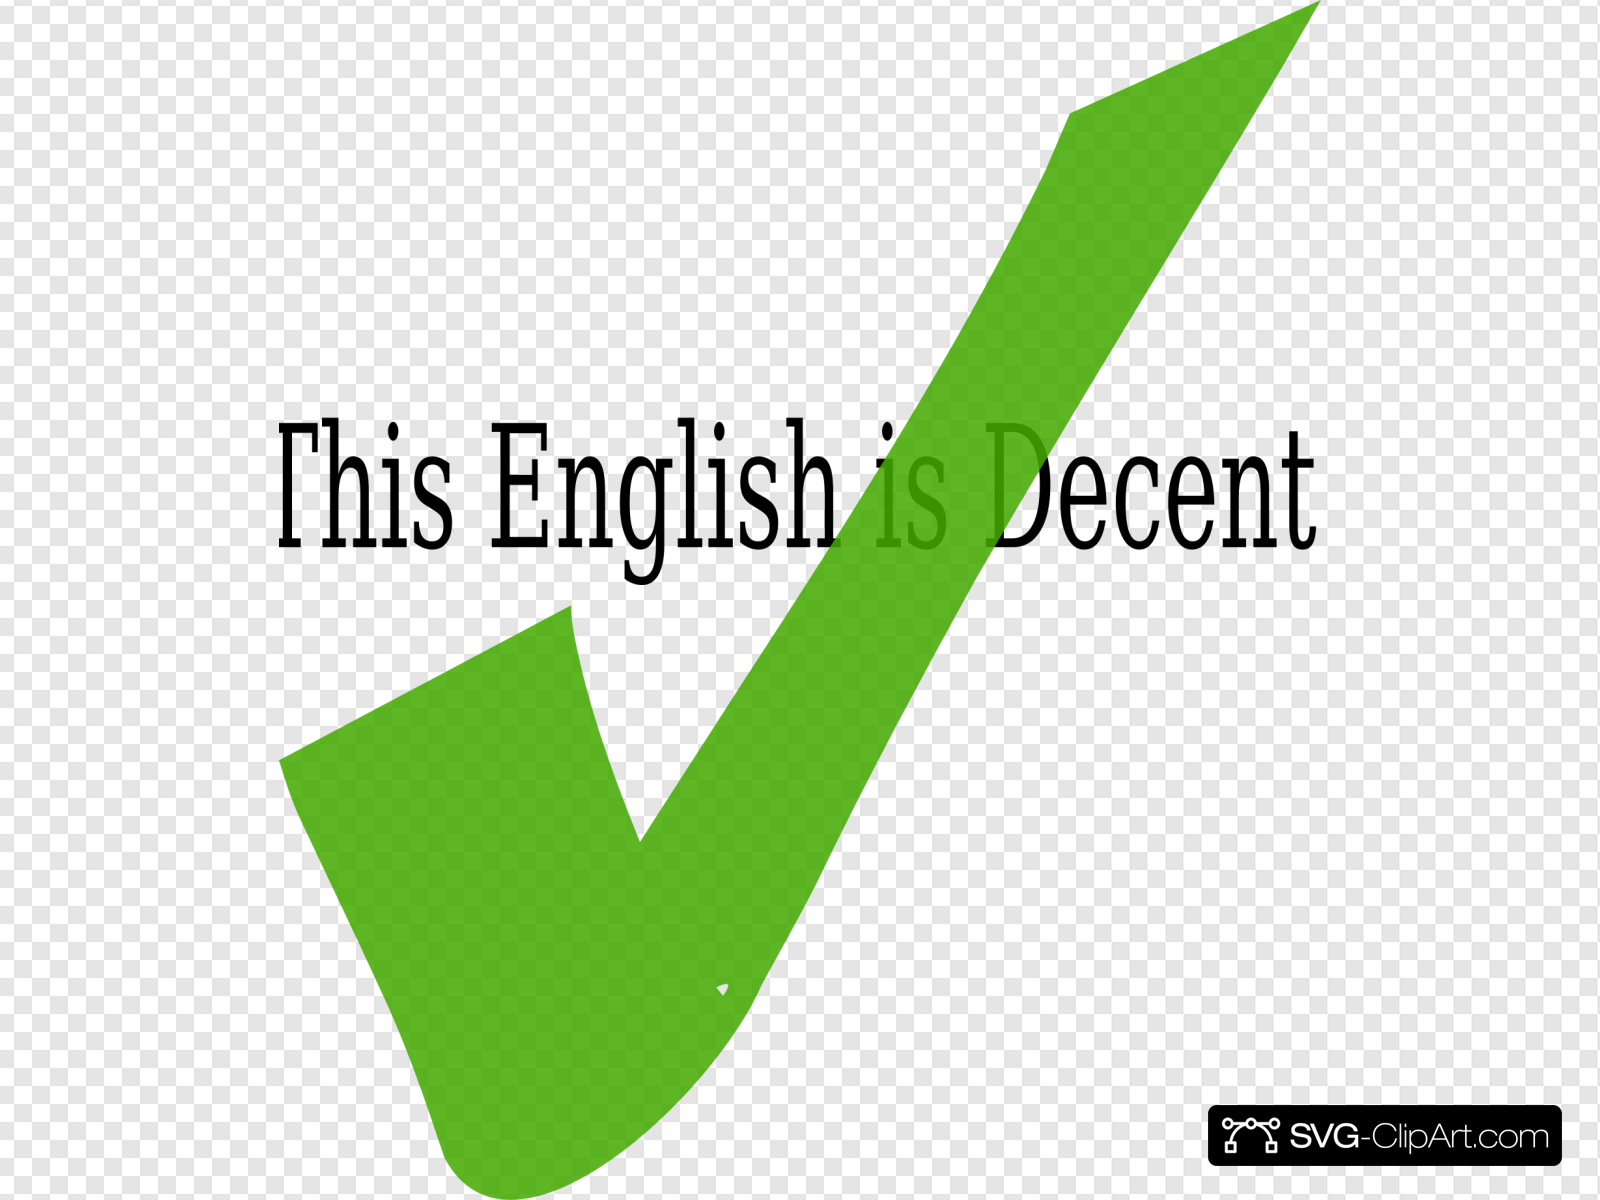 Decent English Clip art, Icon and SVG.